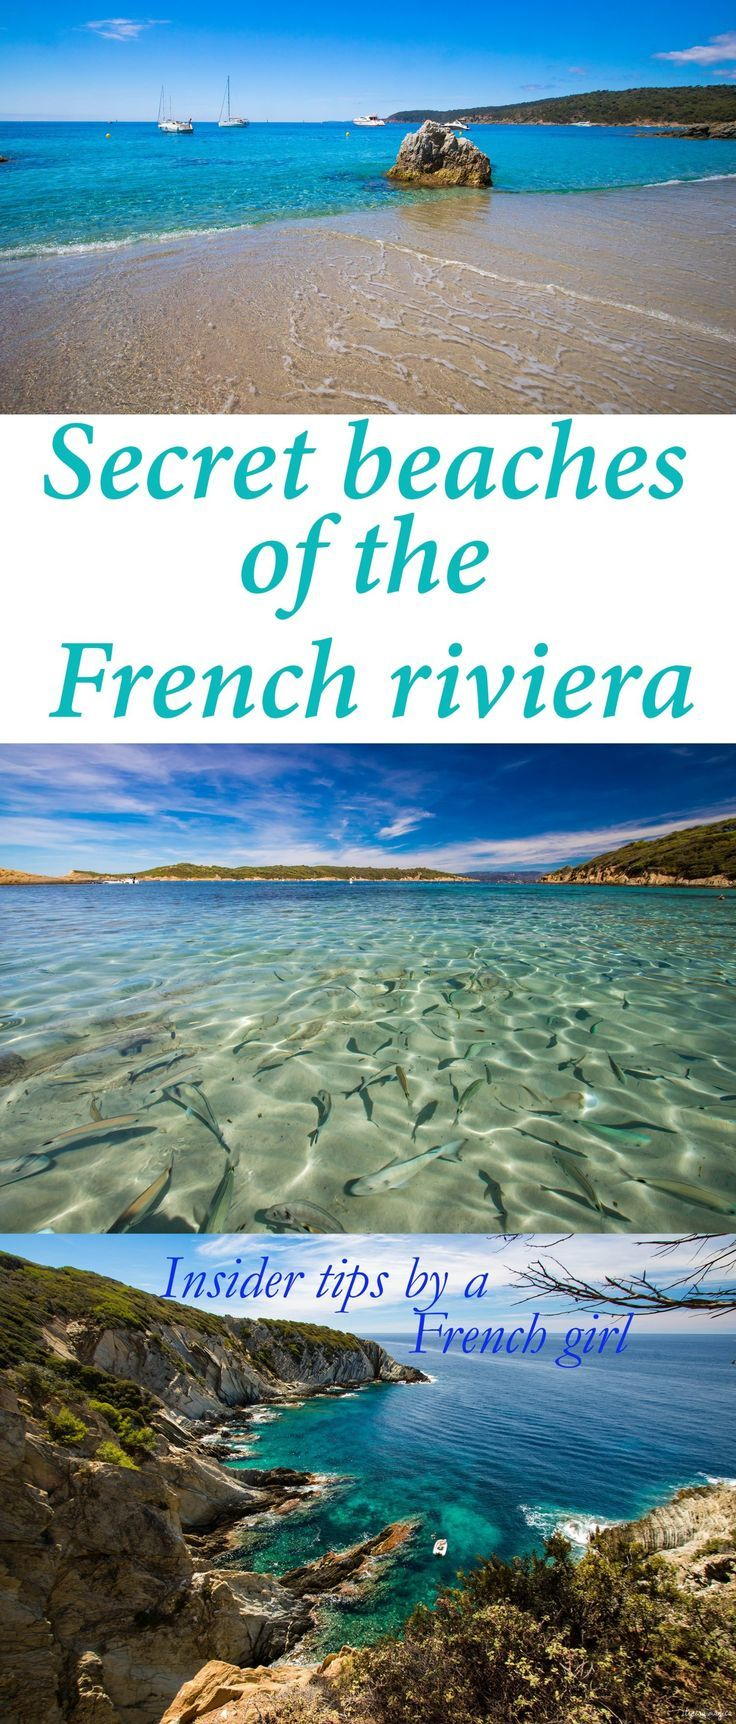 secret sand beaches of the french riviera genuine insider tips to find the best beaches in. Black Bedroom Furniture Sets. Home Design Ideas